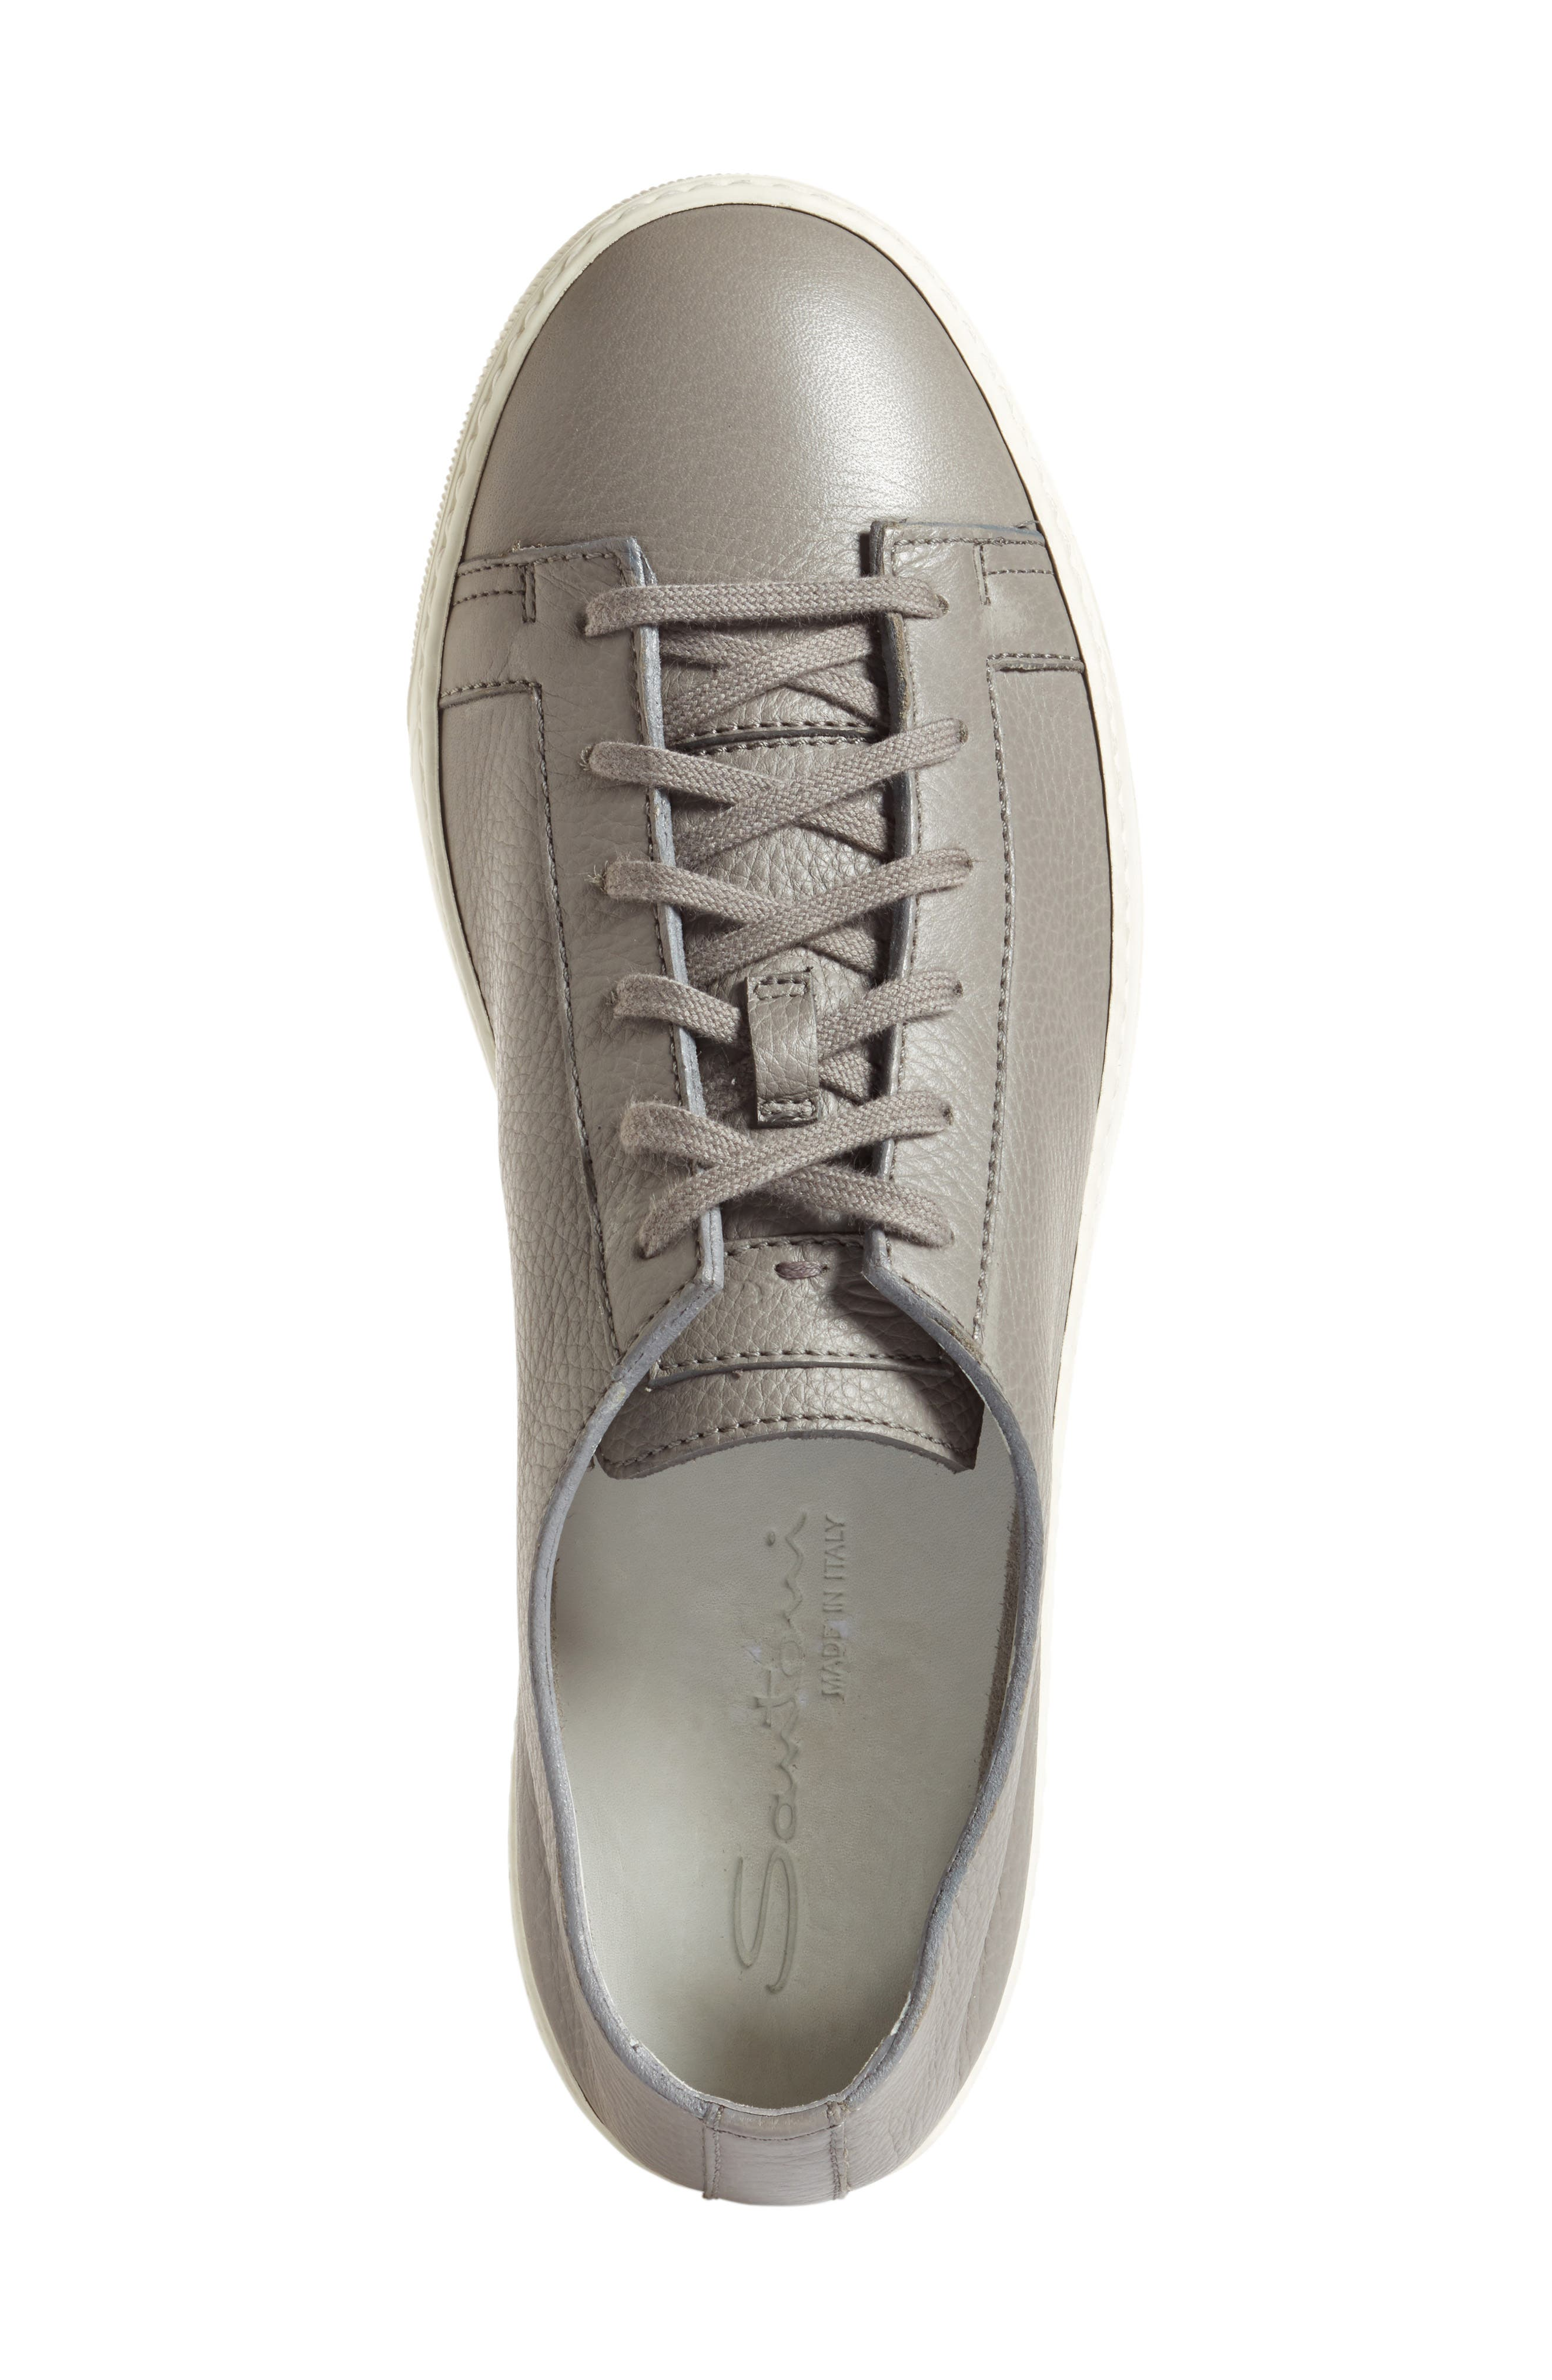 Cleanic Sneaker,                             Alternate thumbnail 3, color,                             Grey Leather